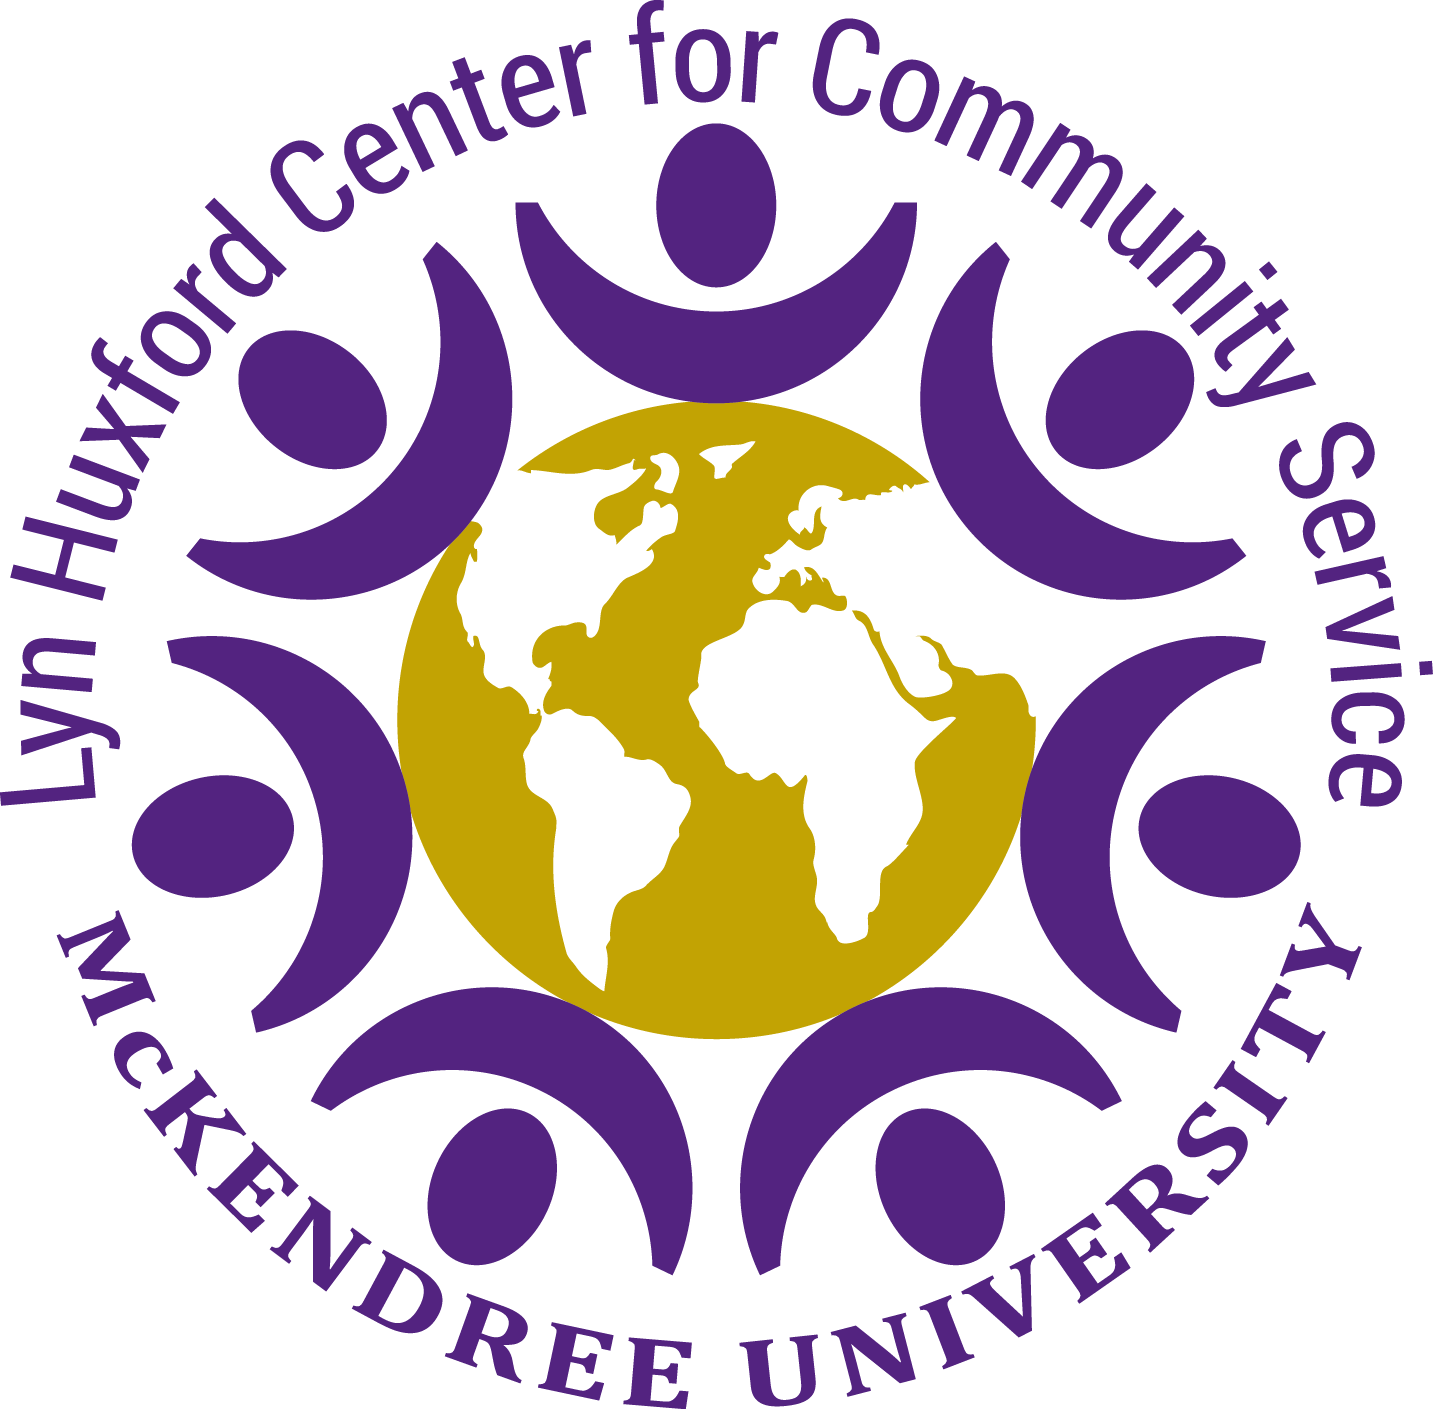 Center for Community Service Logo